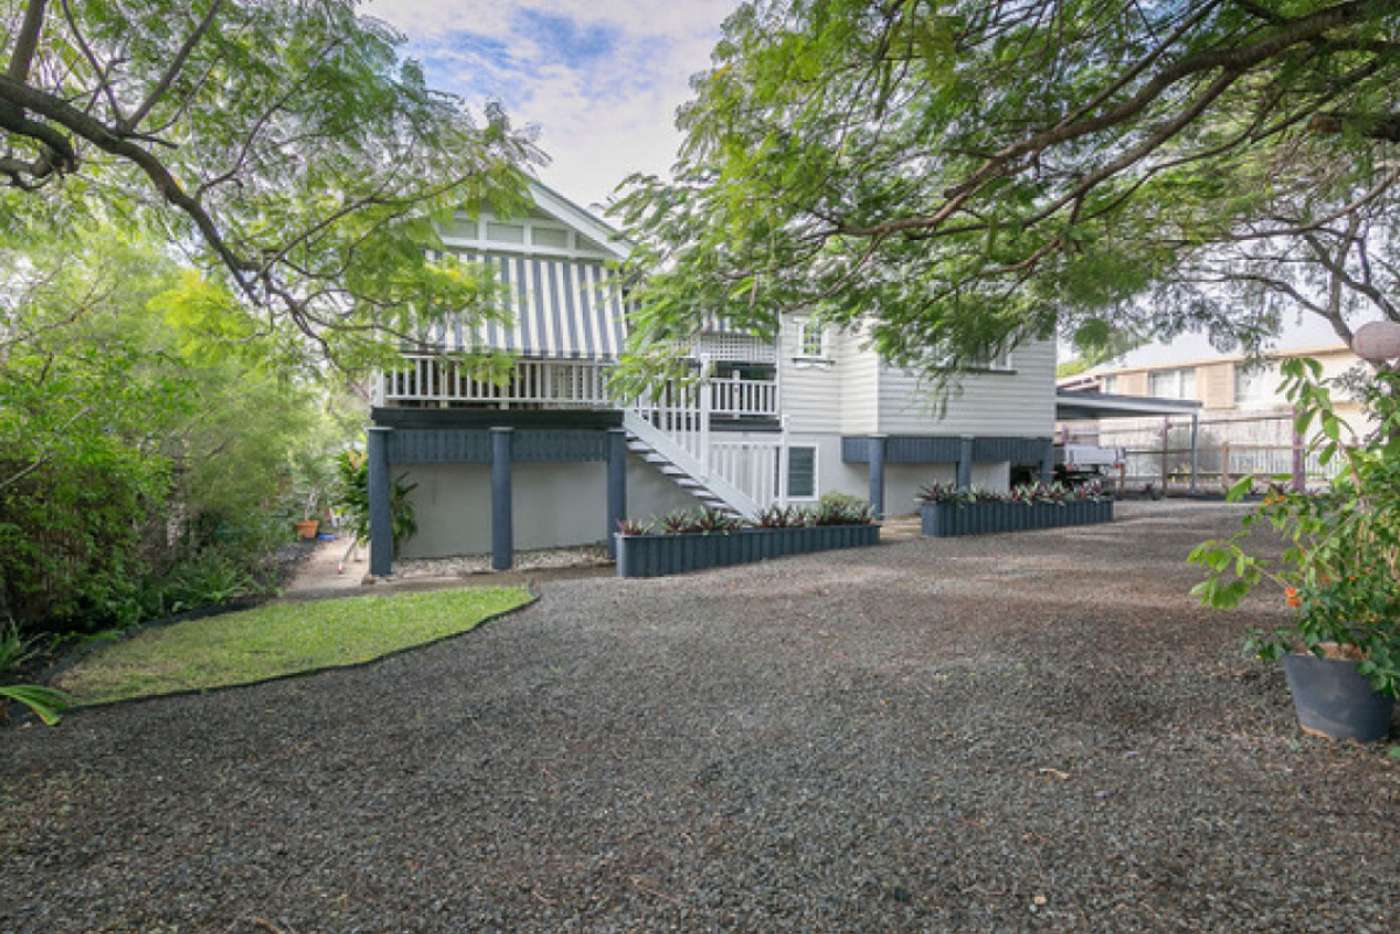 Main view of Homely house listing, 2 Teape Street, Silkstone QLD 4304